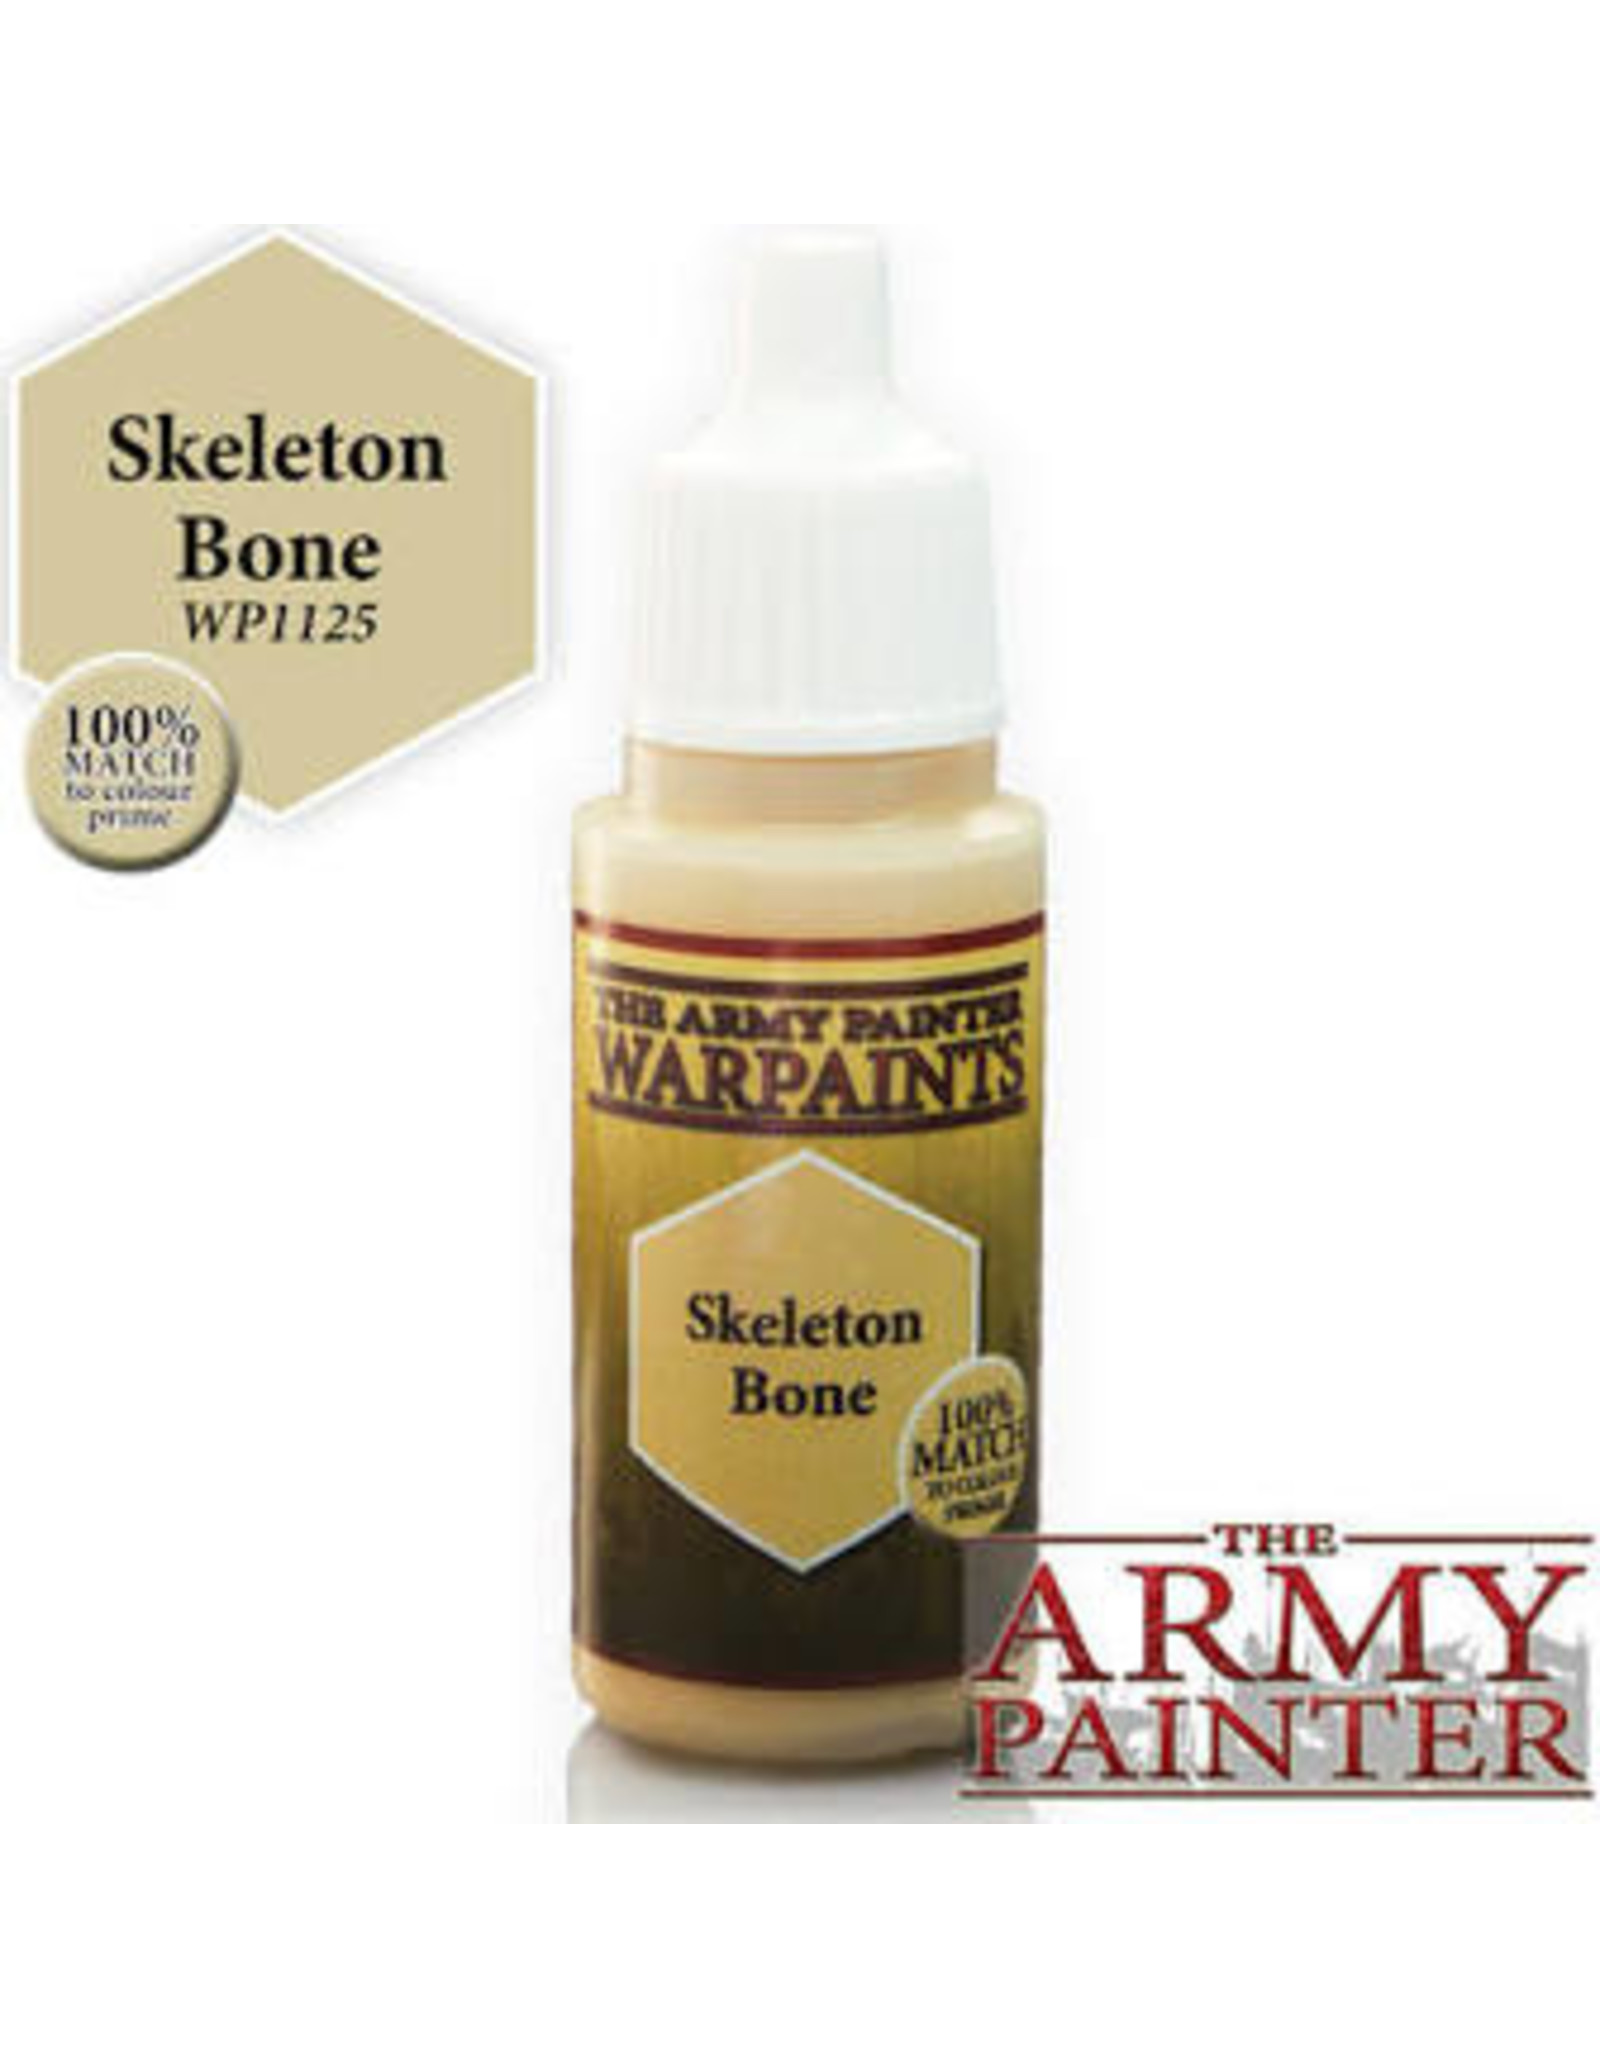 Army Painter Army Painter: Skeleton Bone